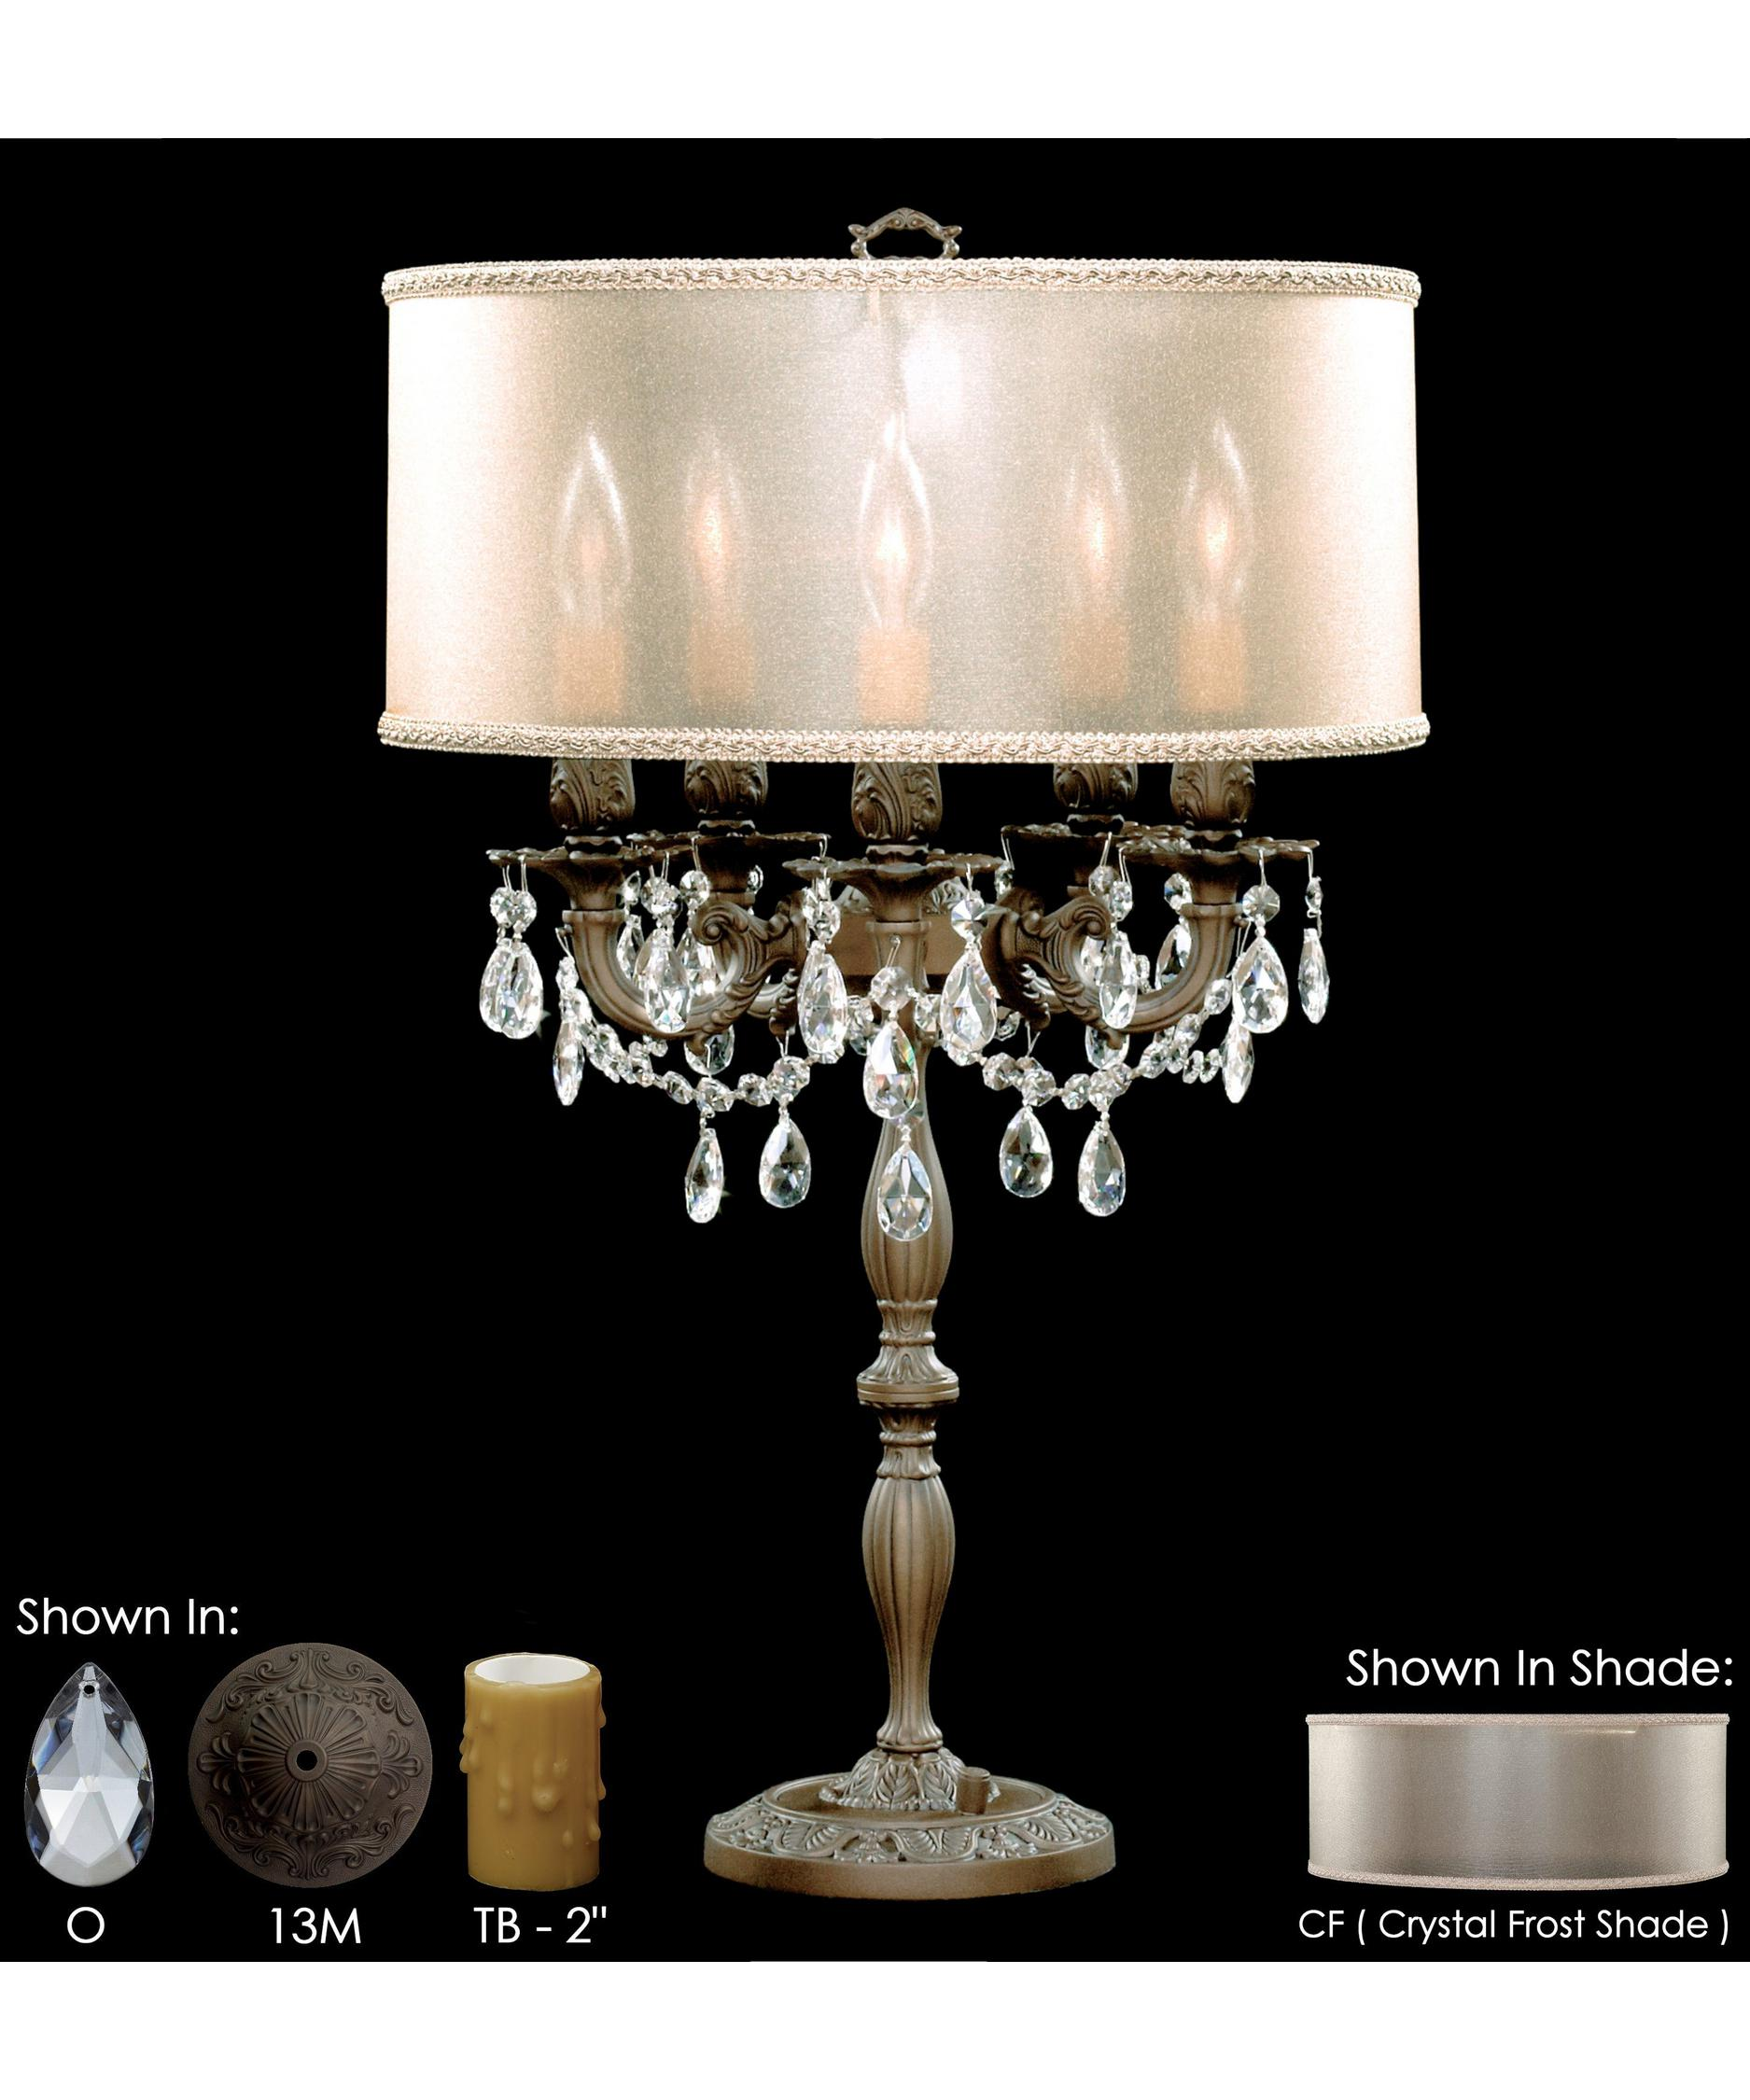 Shown In Aged Bronze Matte Finish With Clear Precision Teardrop Crystal,  Crystal Frost Shade And